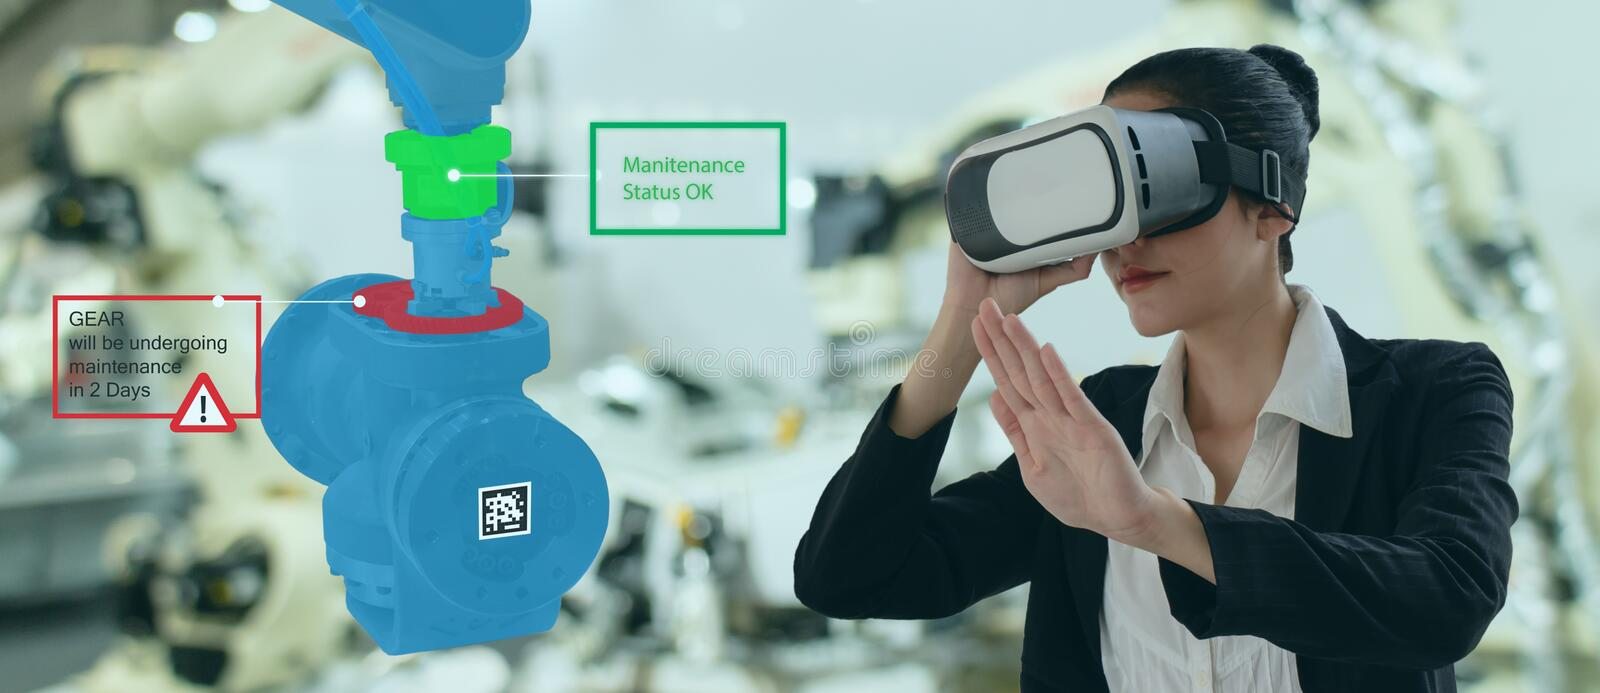 Iot industry 4.0 concept,industrial engineer using smart glasses with augmented mixed with virtual reality technology to monitorin royalty free stock photo